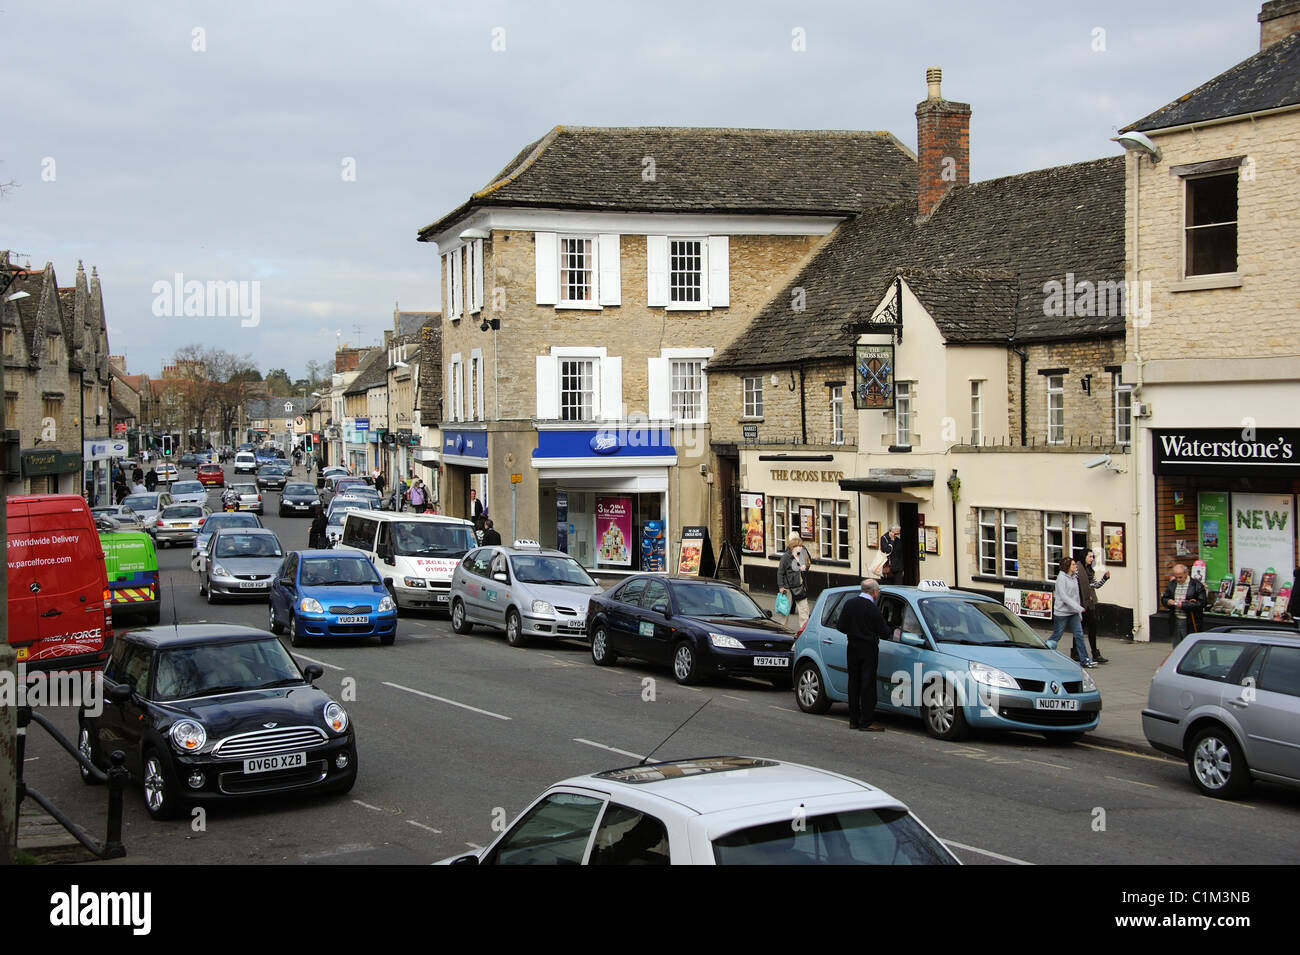 West Oxfordshire market town Witney showing busy traffic and congested parking. England UK - Stock Image